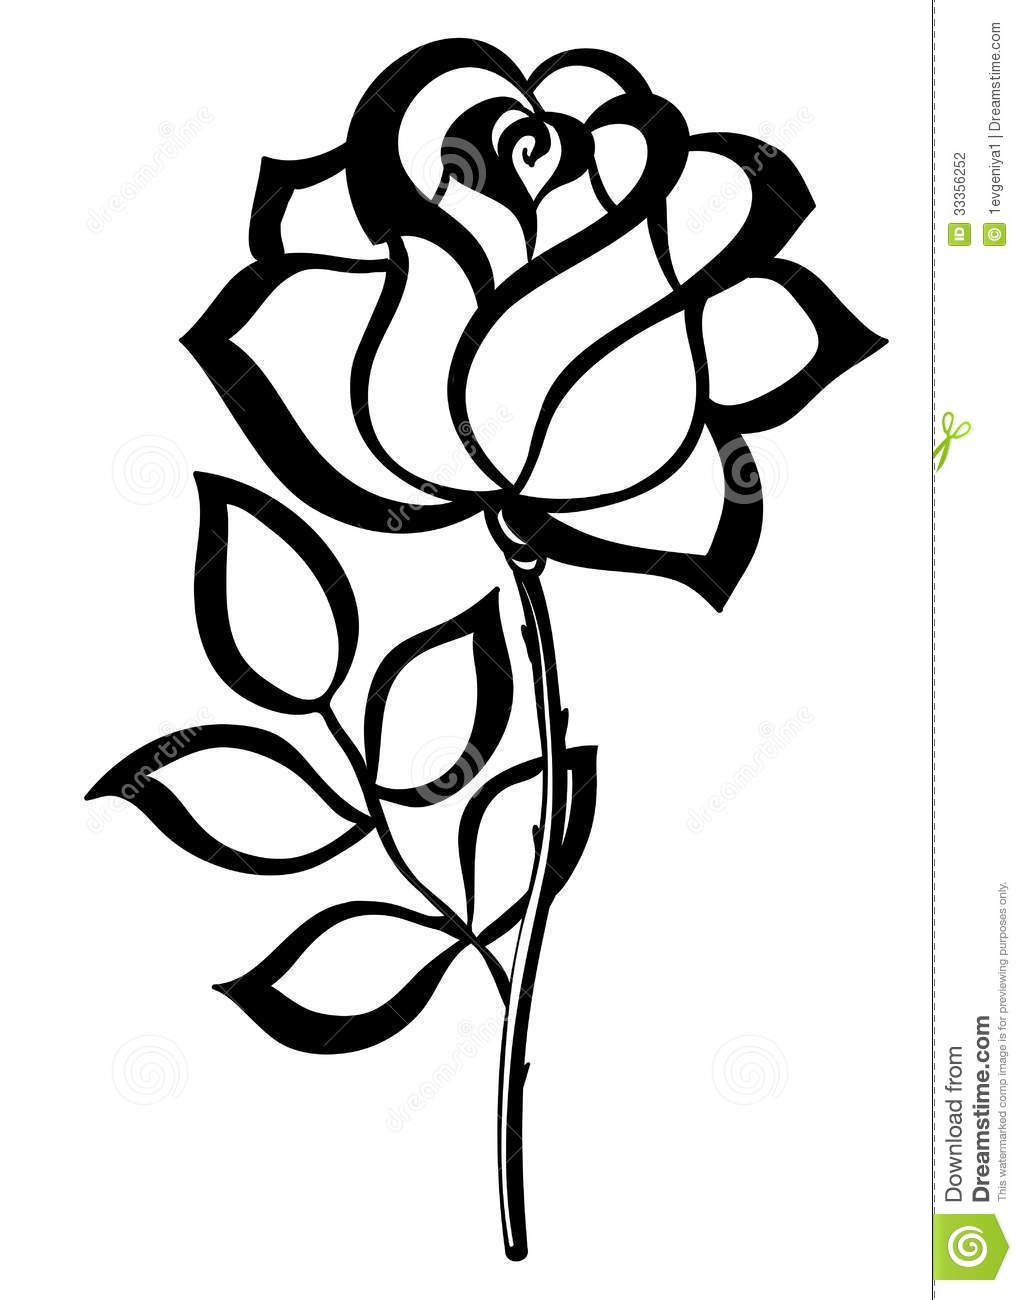 Simple rose outline simple single rose outline black for Simple single